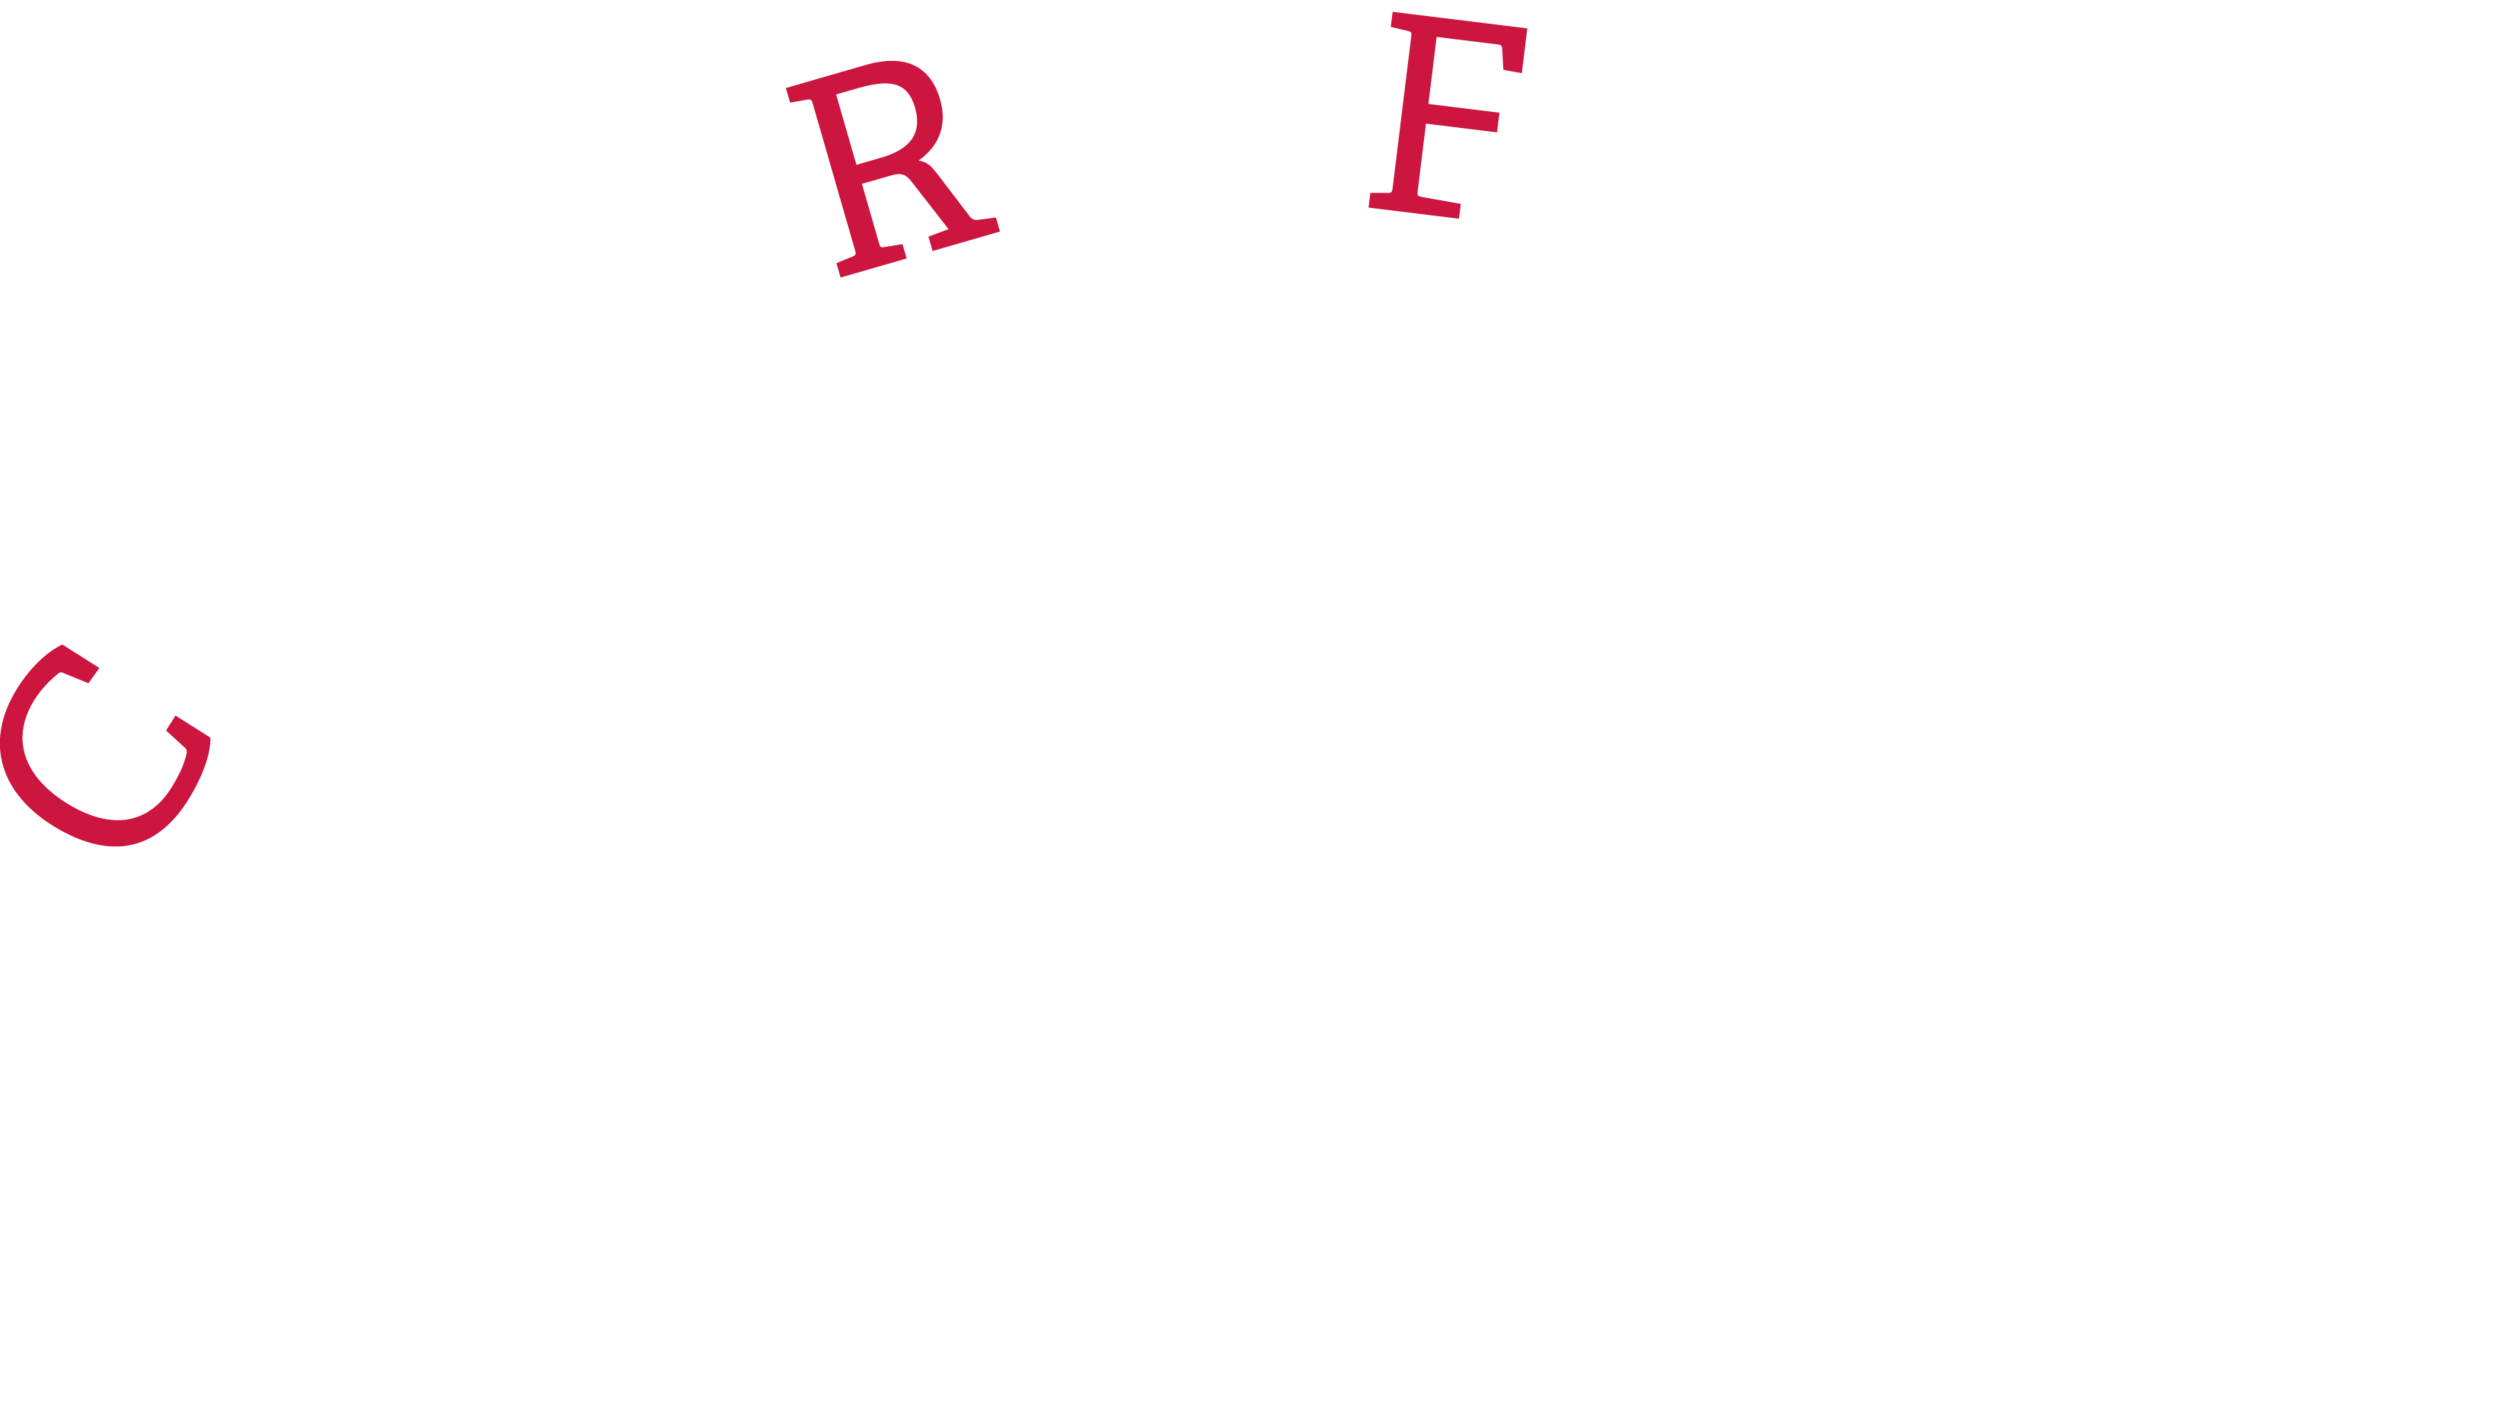 CherryRail Farm has been raising and cooking pigs for over 15 years and know how to make the juiciest, mouth-watering pork you've ever tasted! Now specializing in pig roasts and catering for parties, holidays, weddings, reunions and other special events with options for delivery or pickup.   CherryRail Farm will be serving pulled pork, mac and cheese, and more at RPM Fest 2019! In the meantime, be sure to visit the self-serve farm store open 24/7 at 416 Meadowbrook Road in Brattleboro, VT to get your ribs, loins, bacon, sausages, tenderloins, pork chops and grass-fed beef.